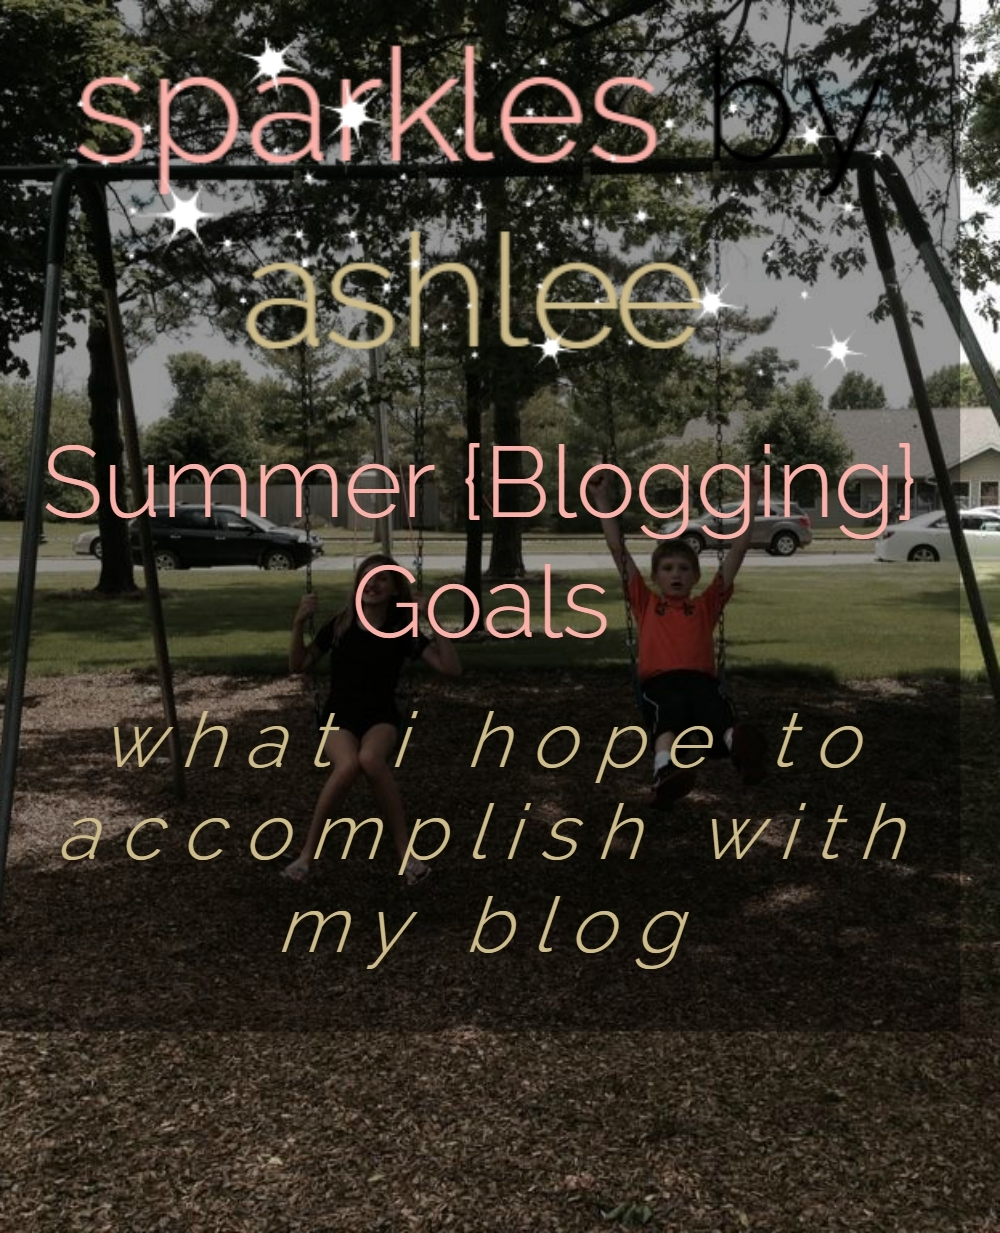 Summer-Blogging-Goals-Sparkles-by-Ashlee.jpg